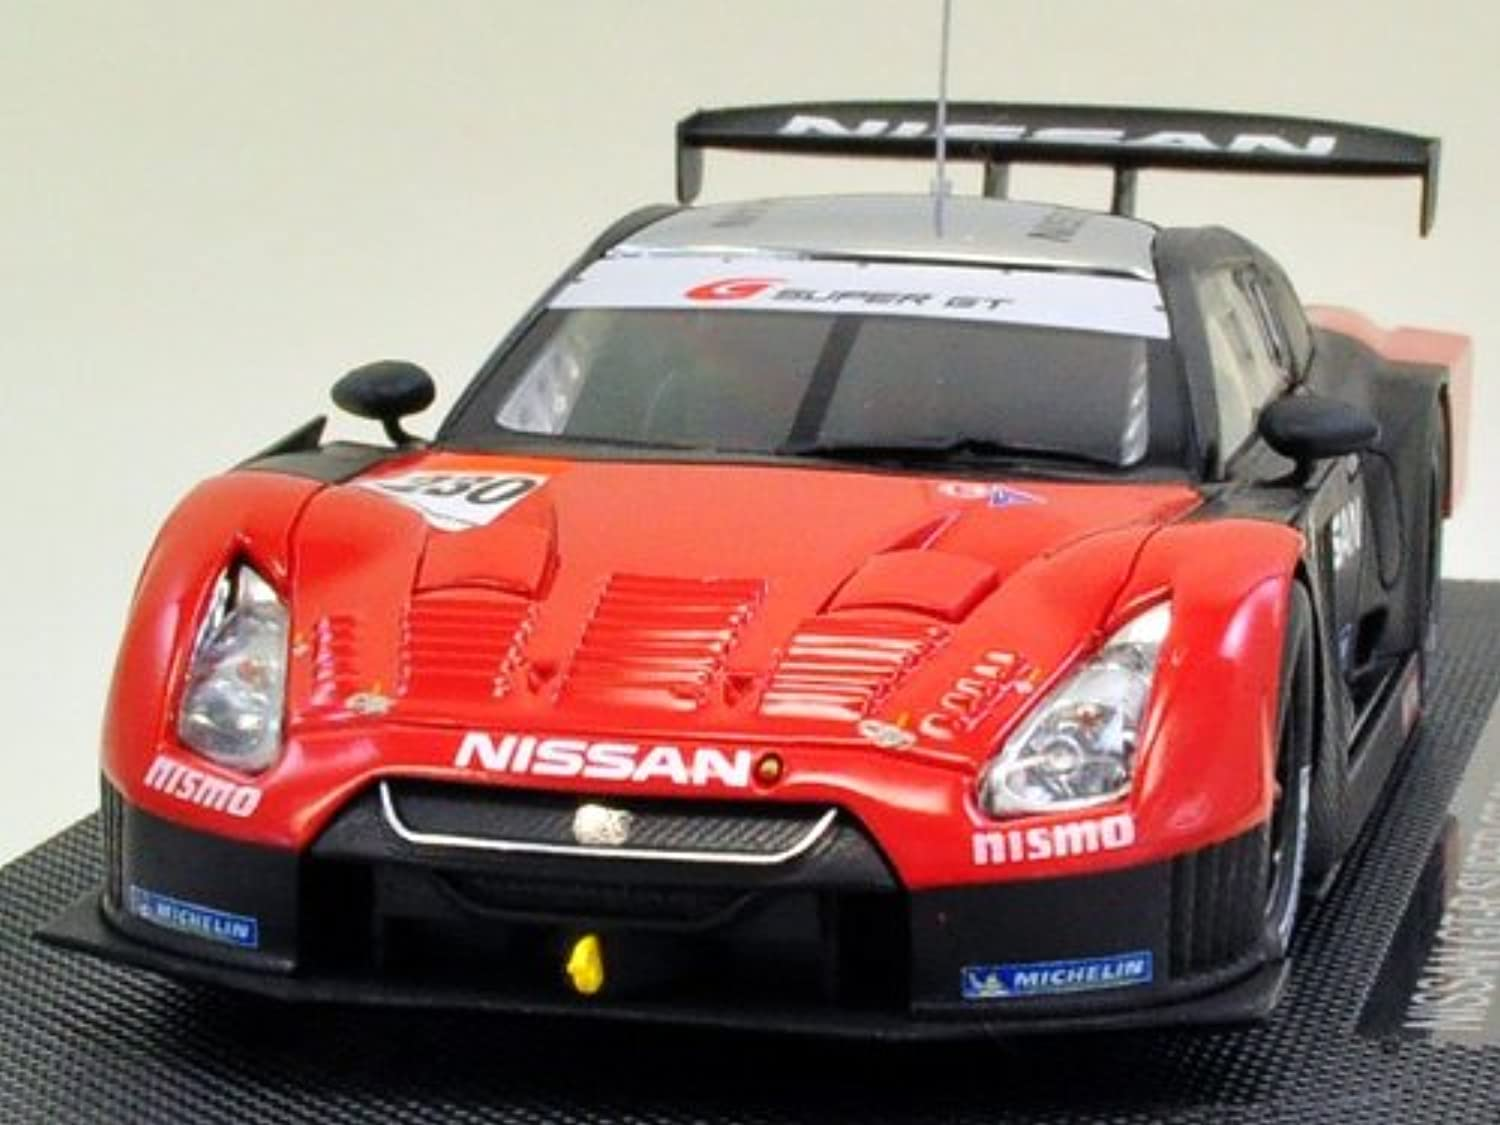 Nissan GT-R 2010 Suzuka test   230 (1 43 die cast 44316) (japan import)